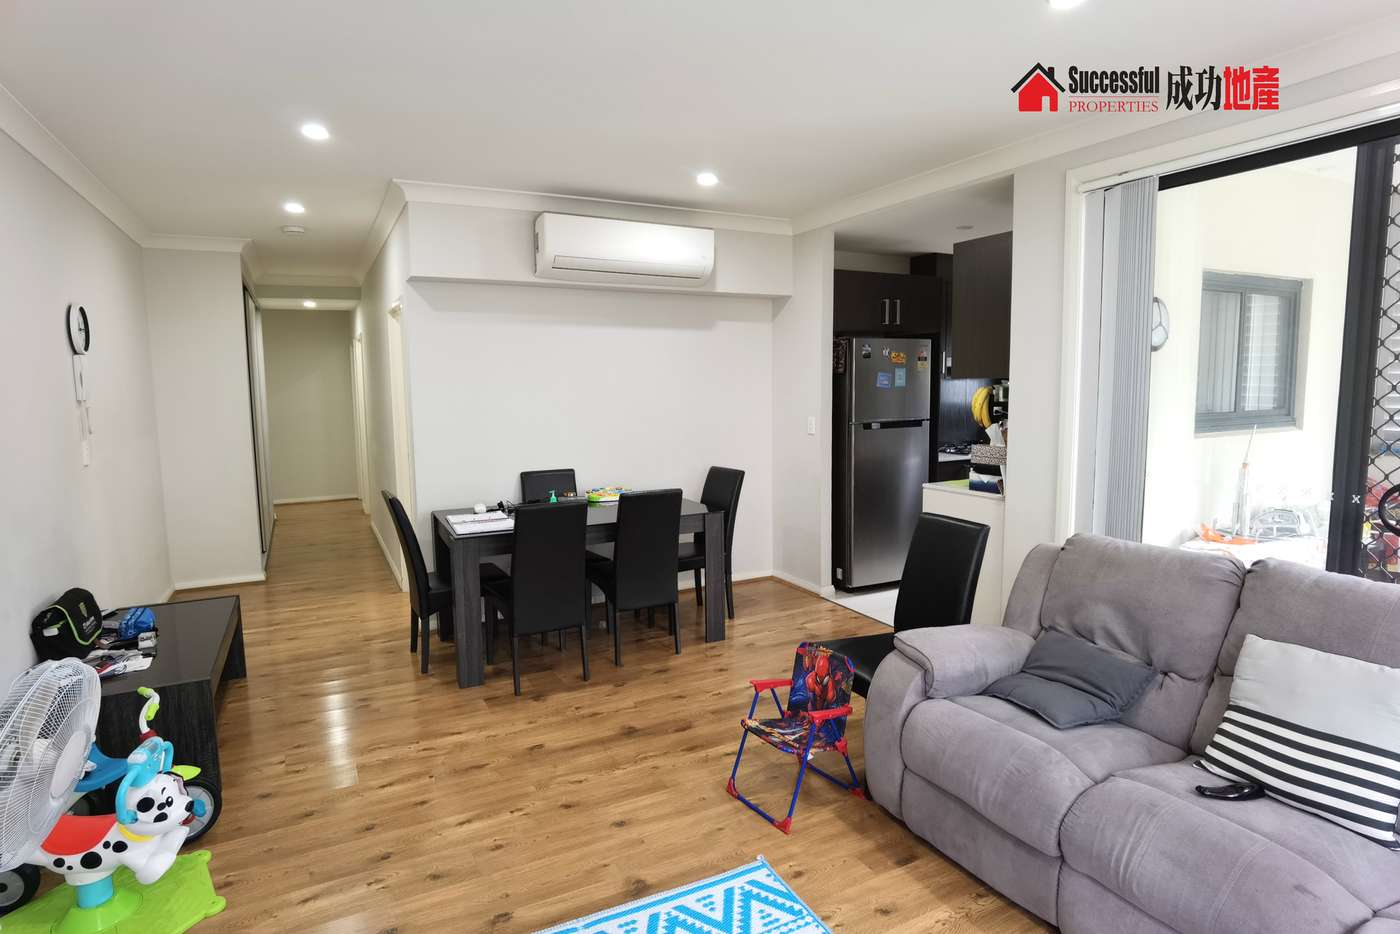 Fifth view of Homely apartment listing, 109/2-4 Amos Street, Parramatta NSW 2150